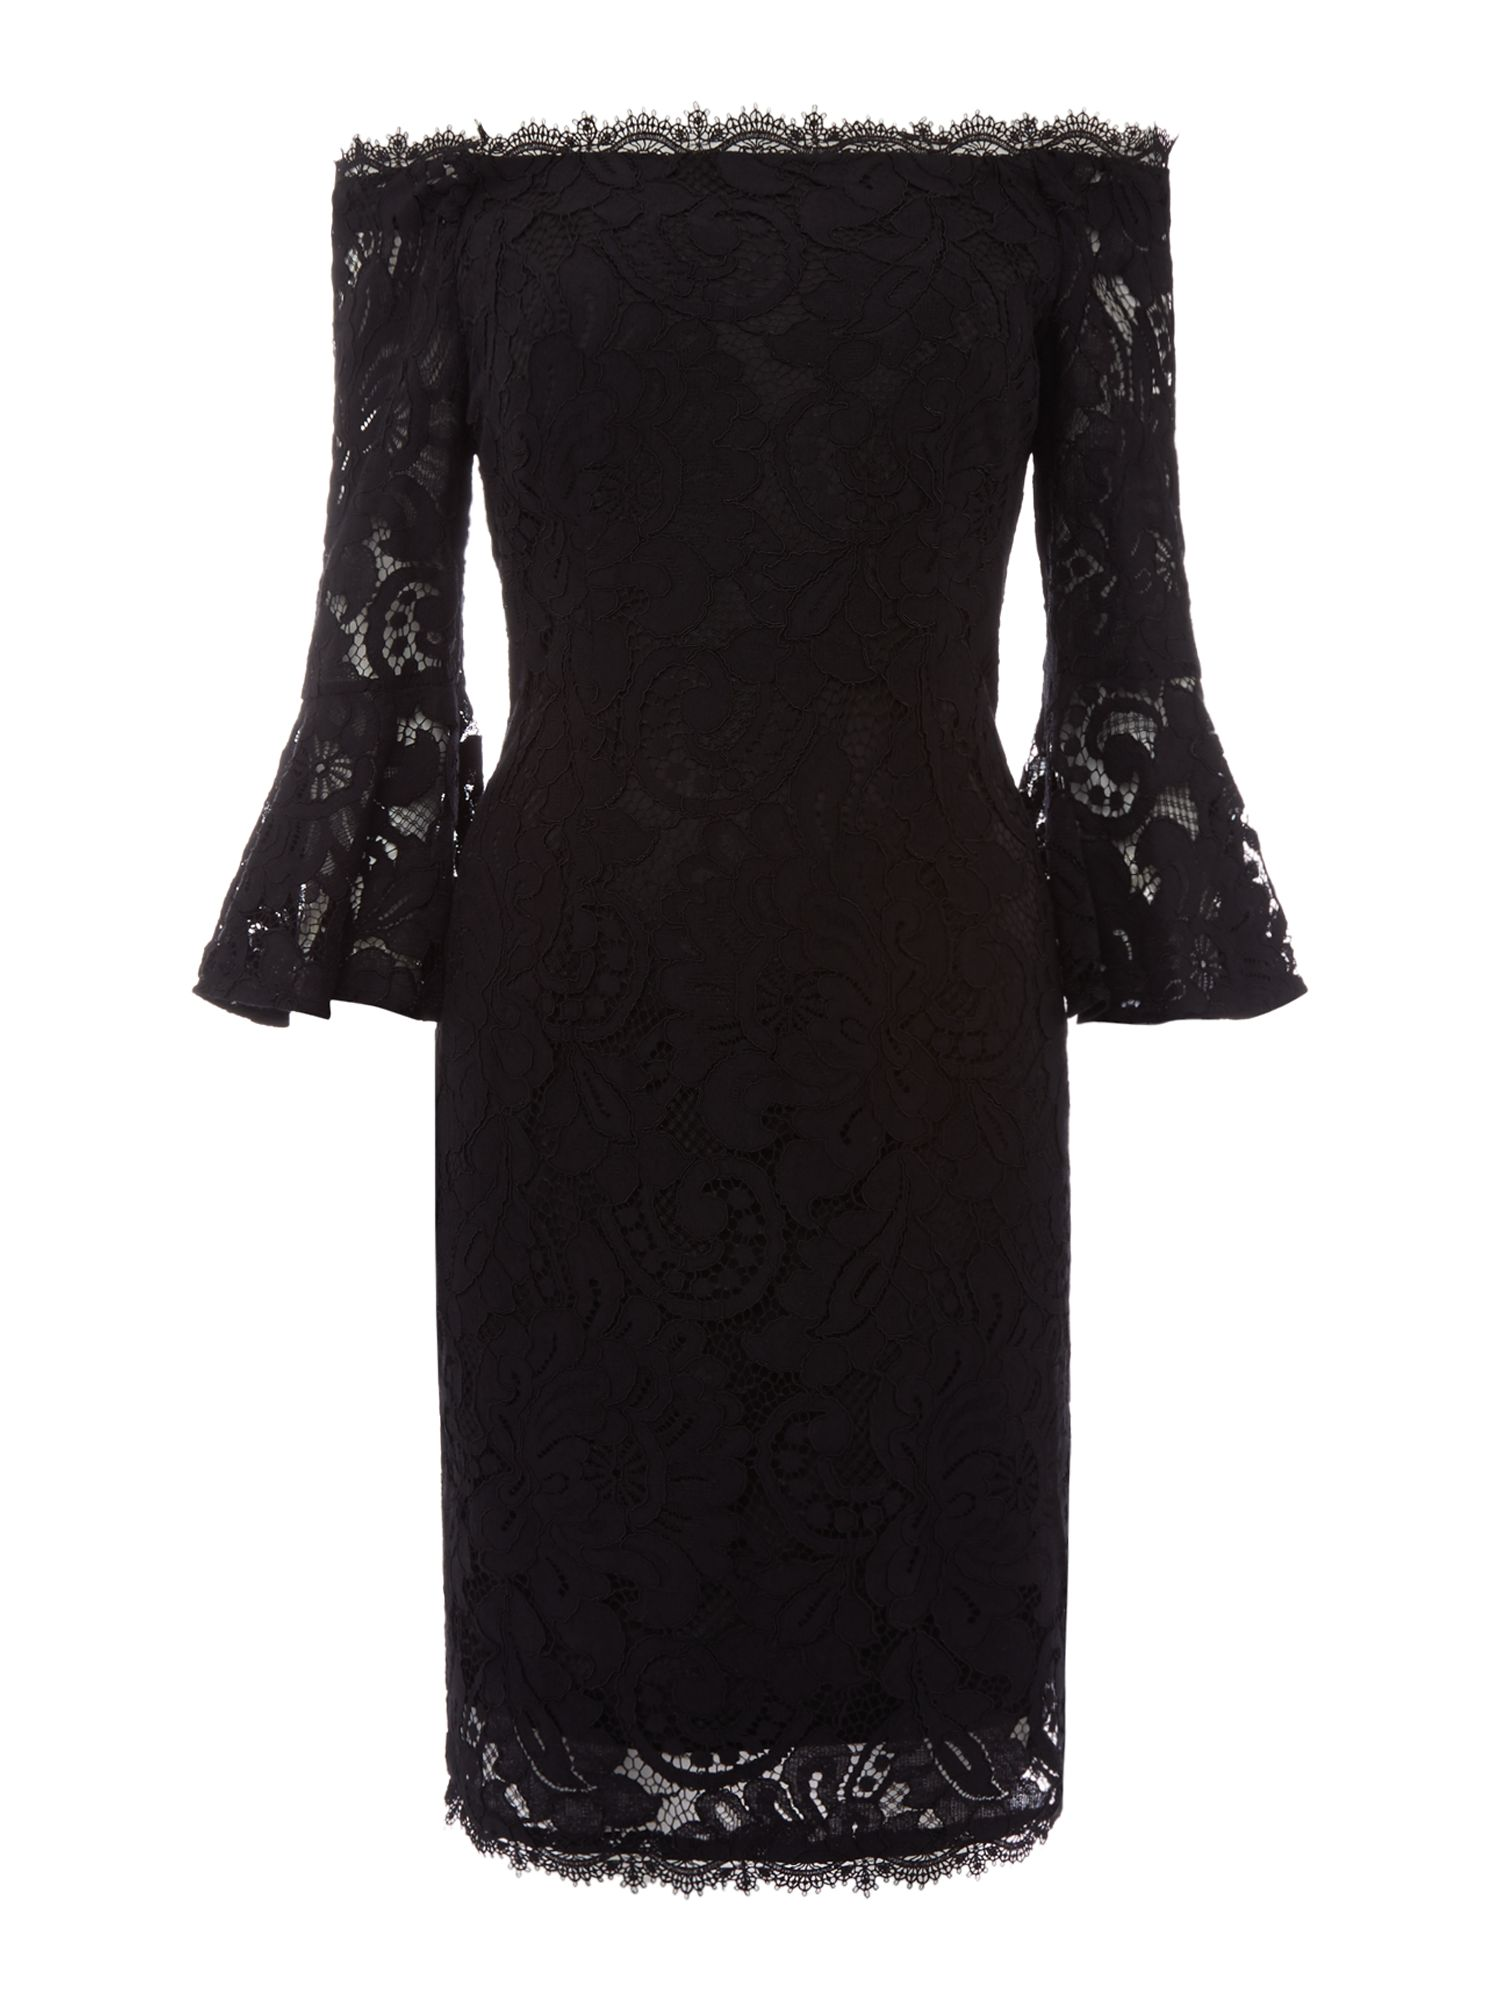 Adrianna Papell Black lace knee length dress, Black